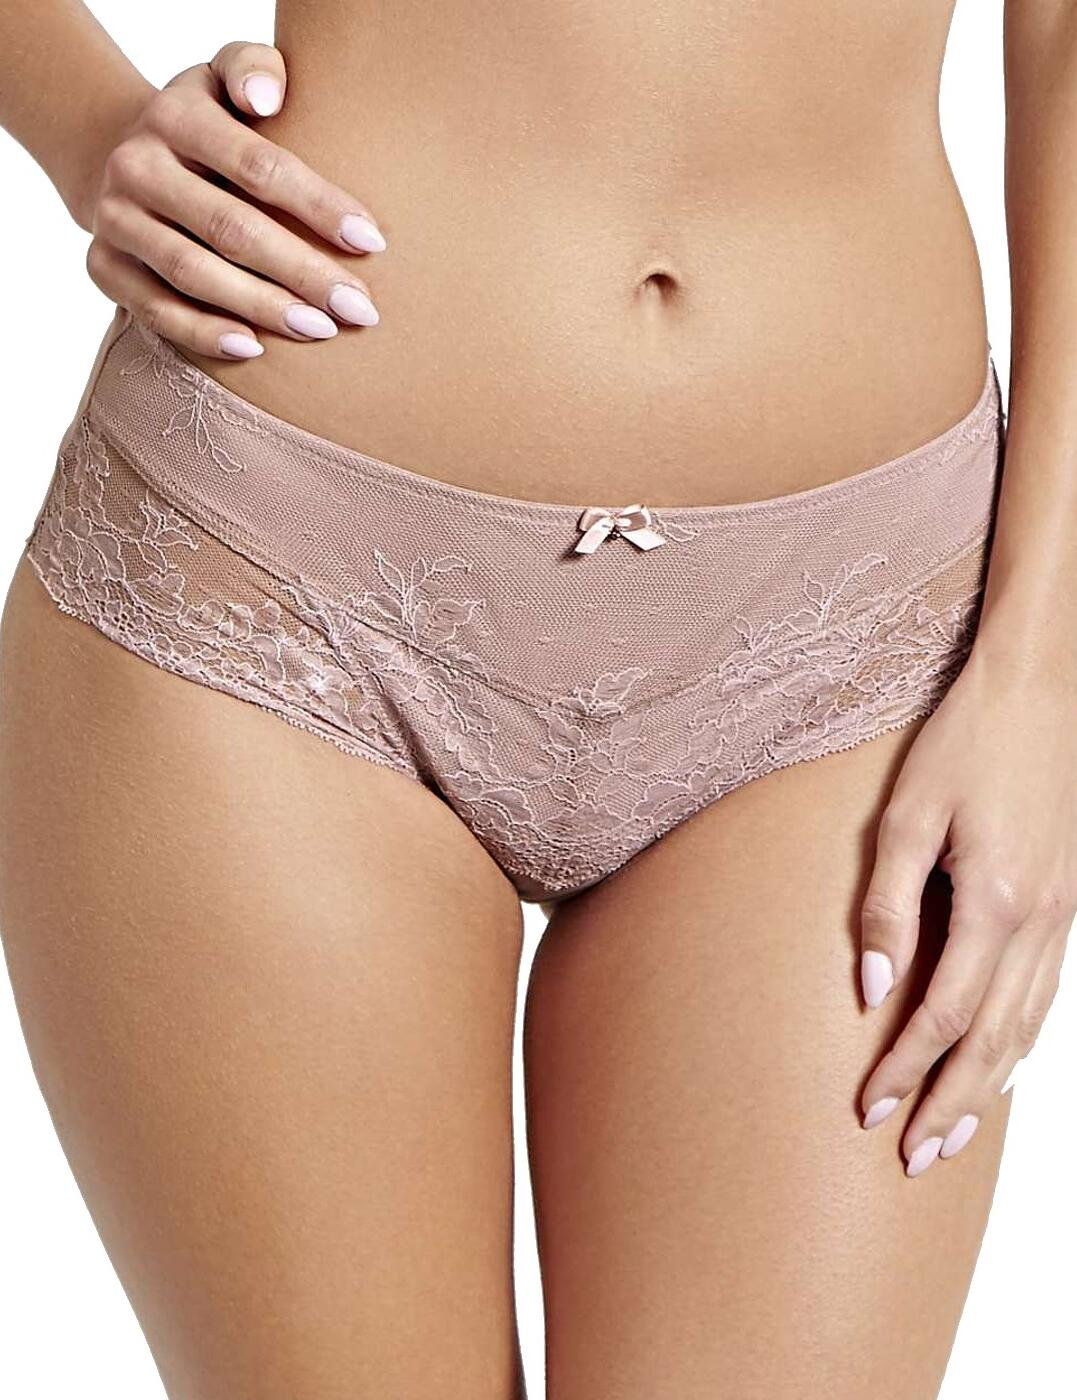 9395 Panache Ana Brief - 9395 Vintage